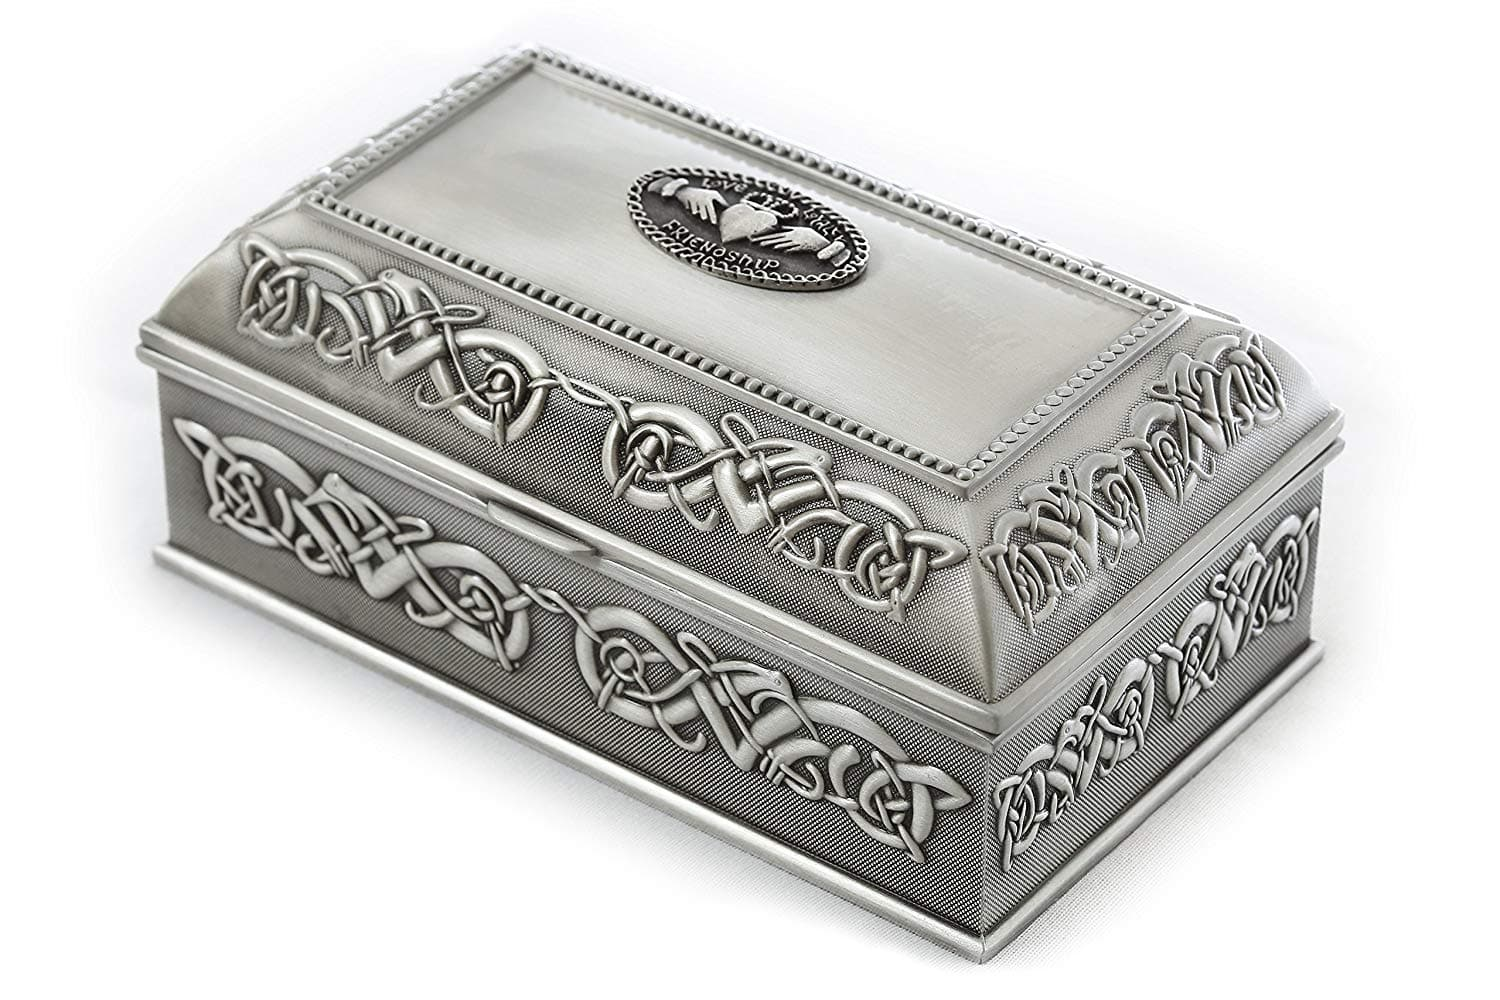 Claddagh Jewelry Box Square 3 Sizes Pewter Made in Ireland